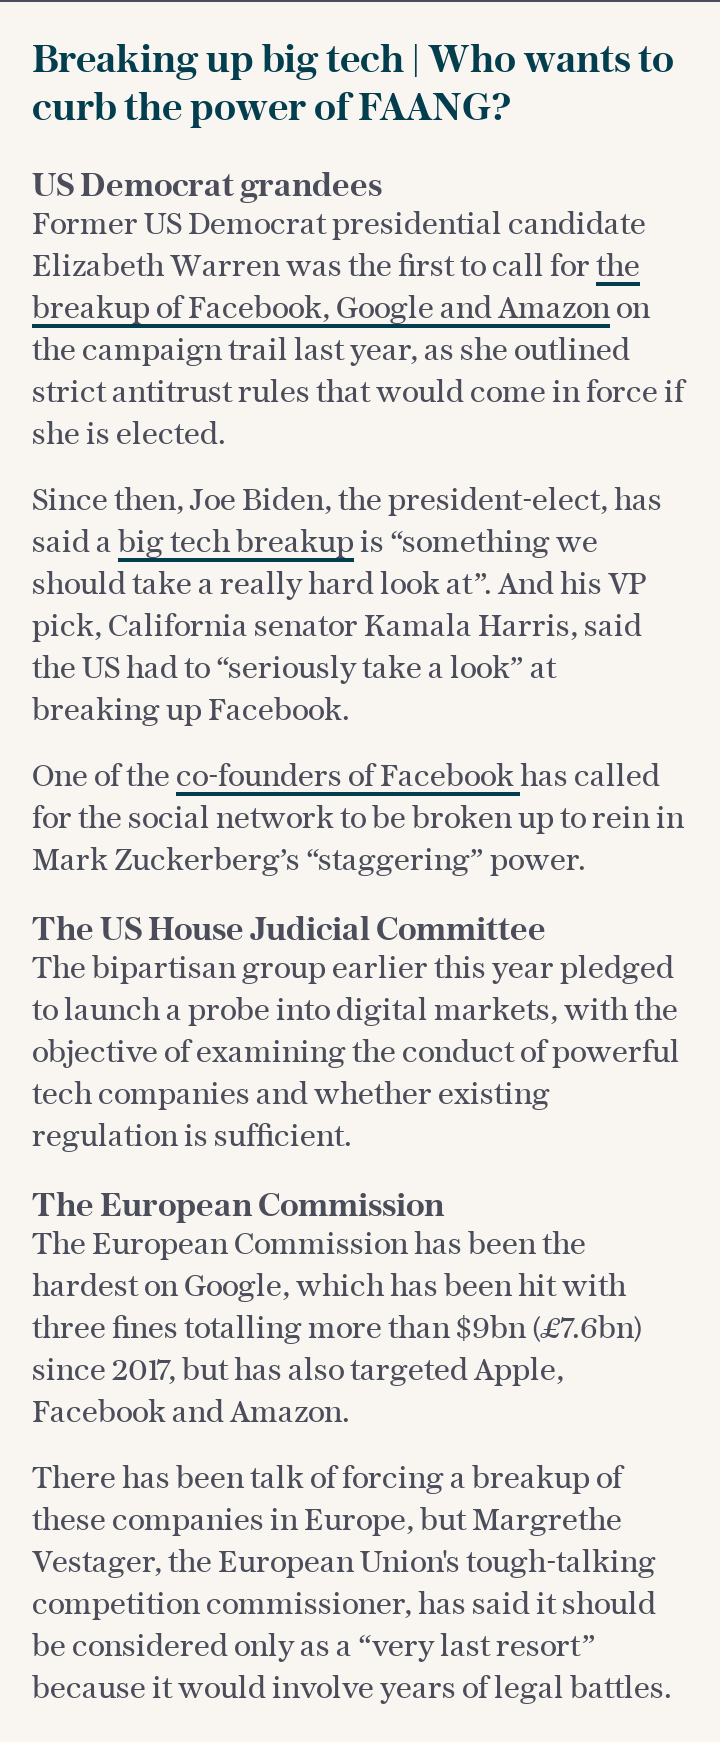 Breaking up big tech | Who wants to curb the power of FAANG?